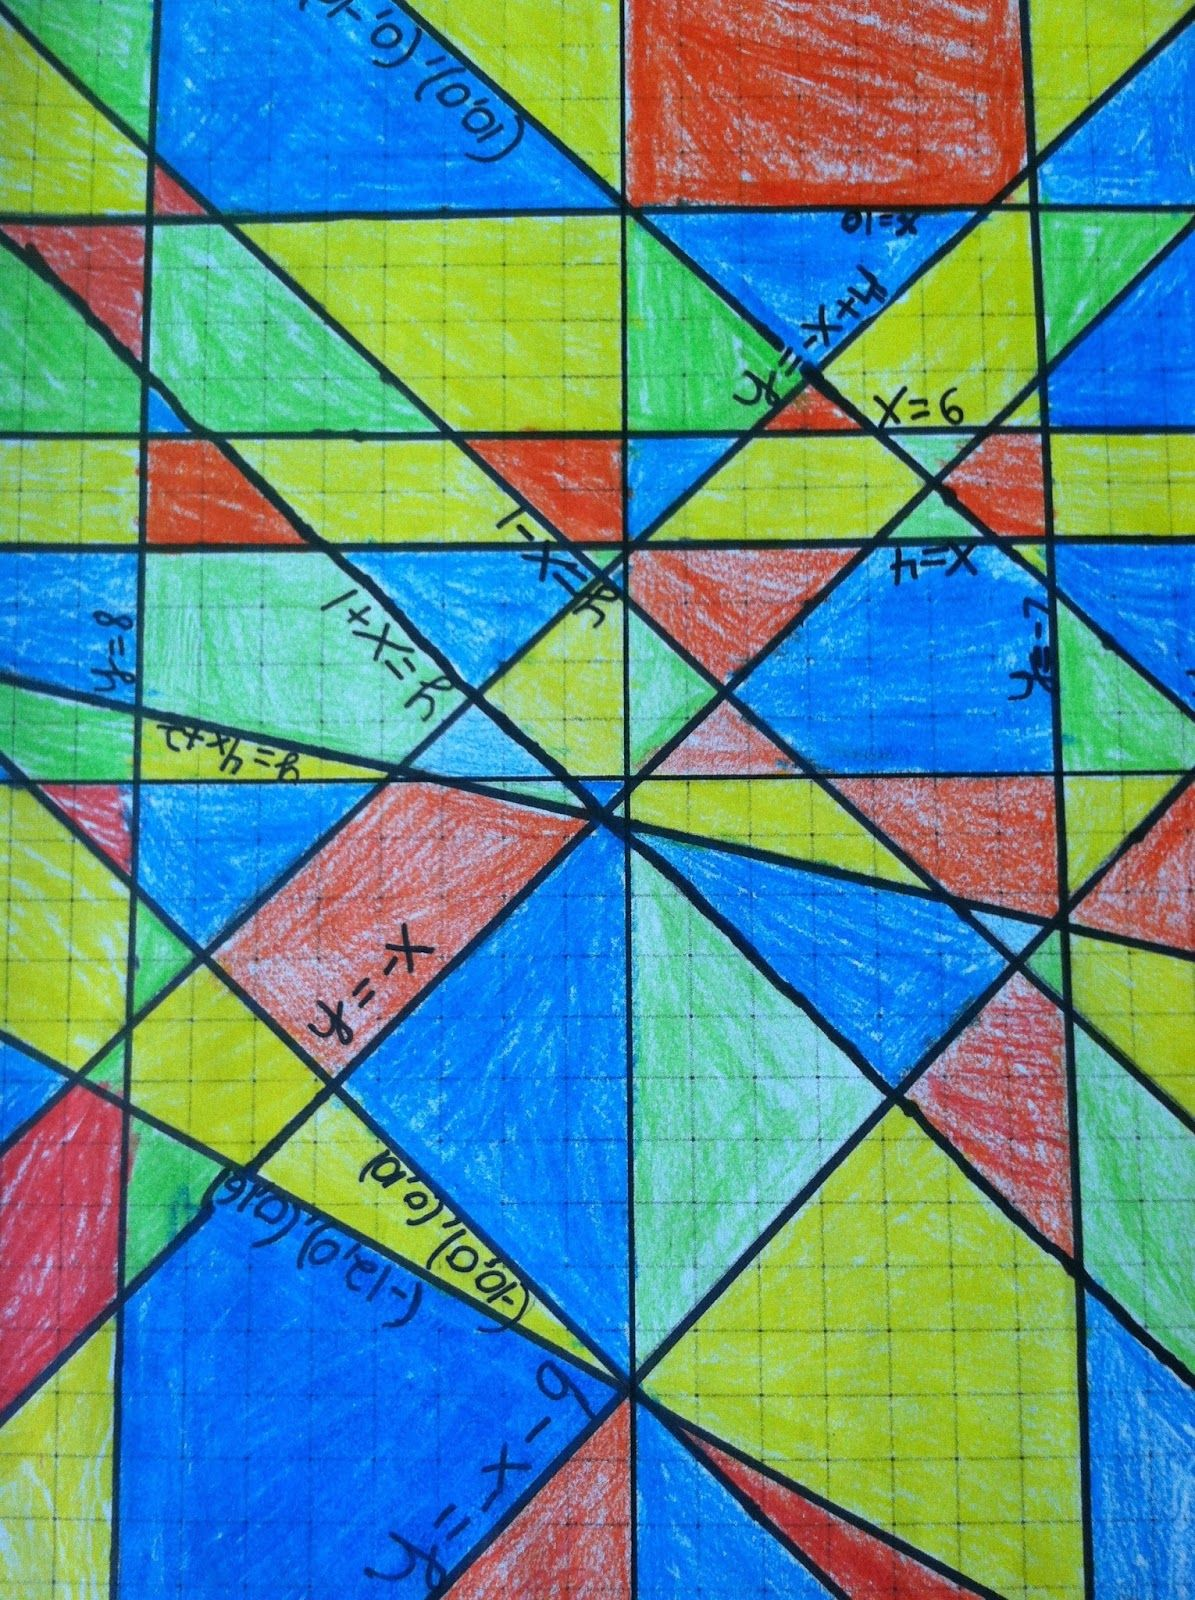 Stained Glass Blueprints Worksheet Answer Key